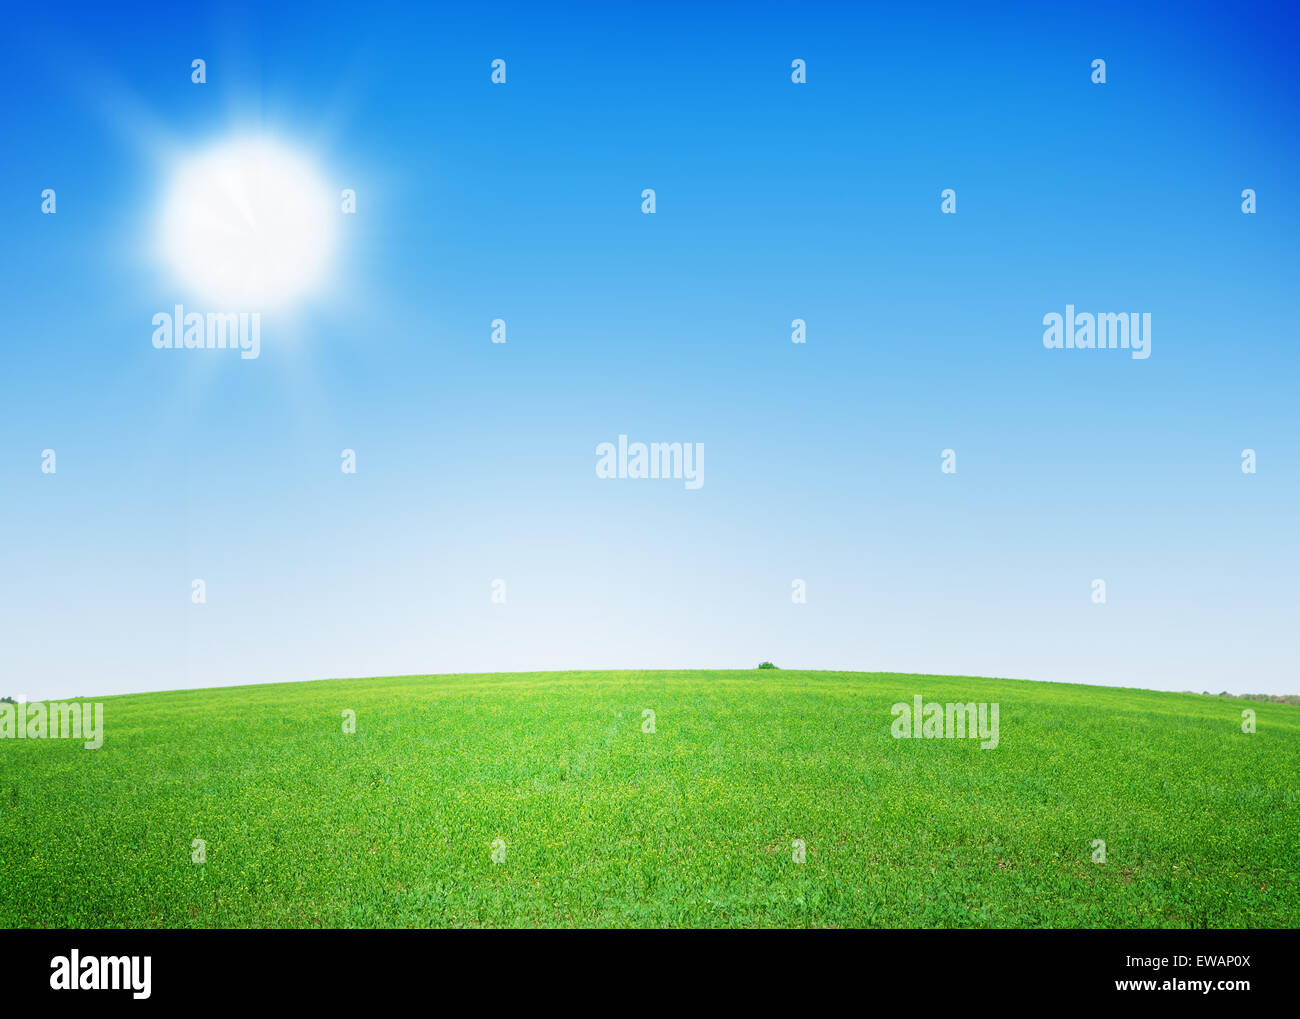 grass field background with flowers. Green Grass Field And Clear Blue Sky Background With Flowers